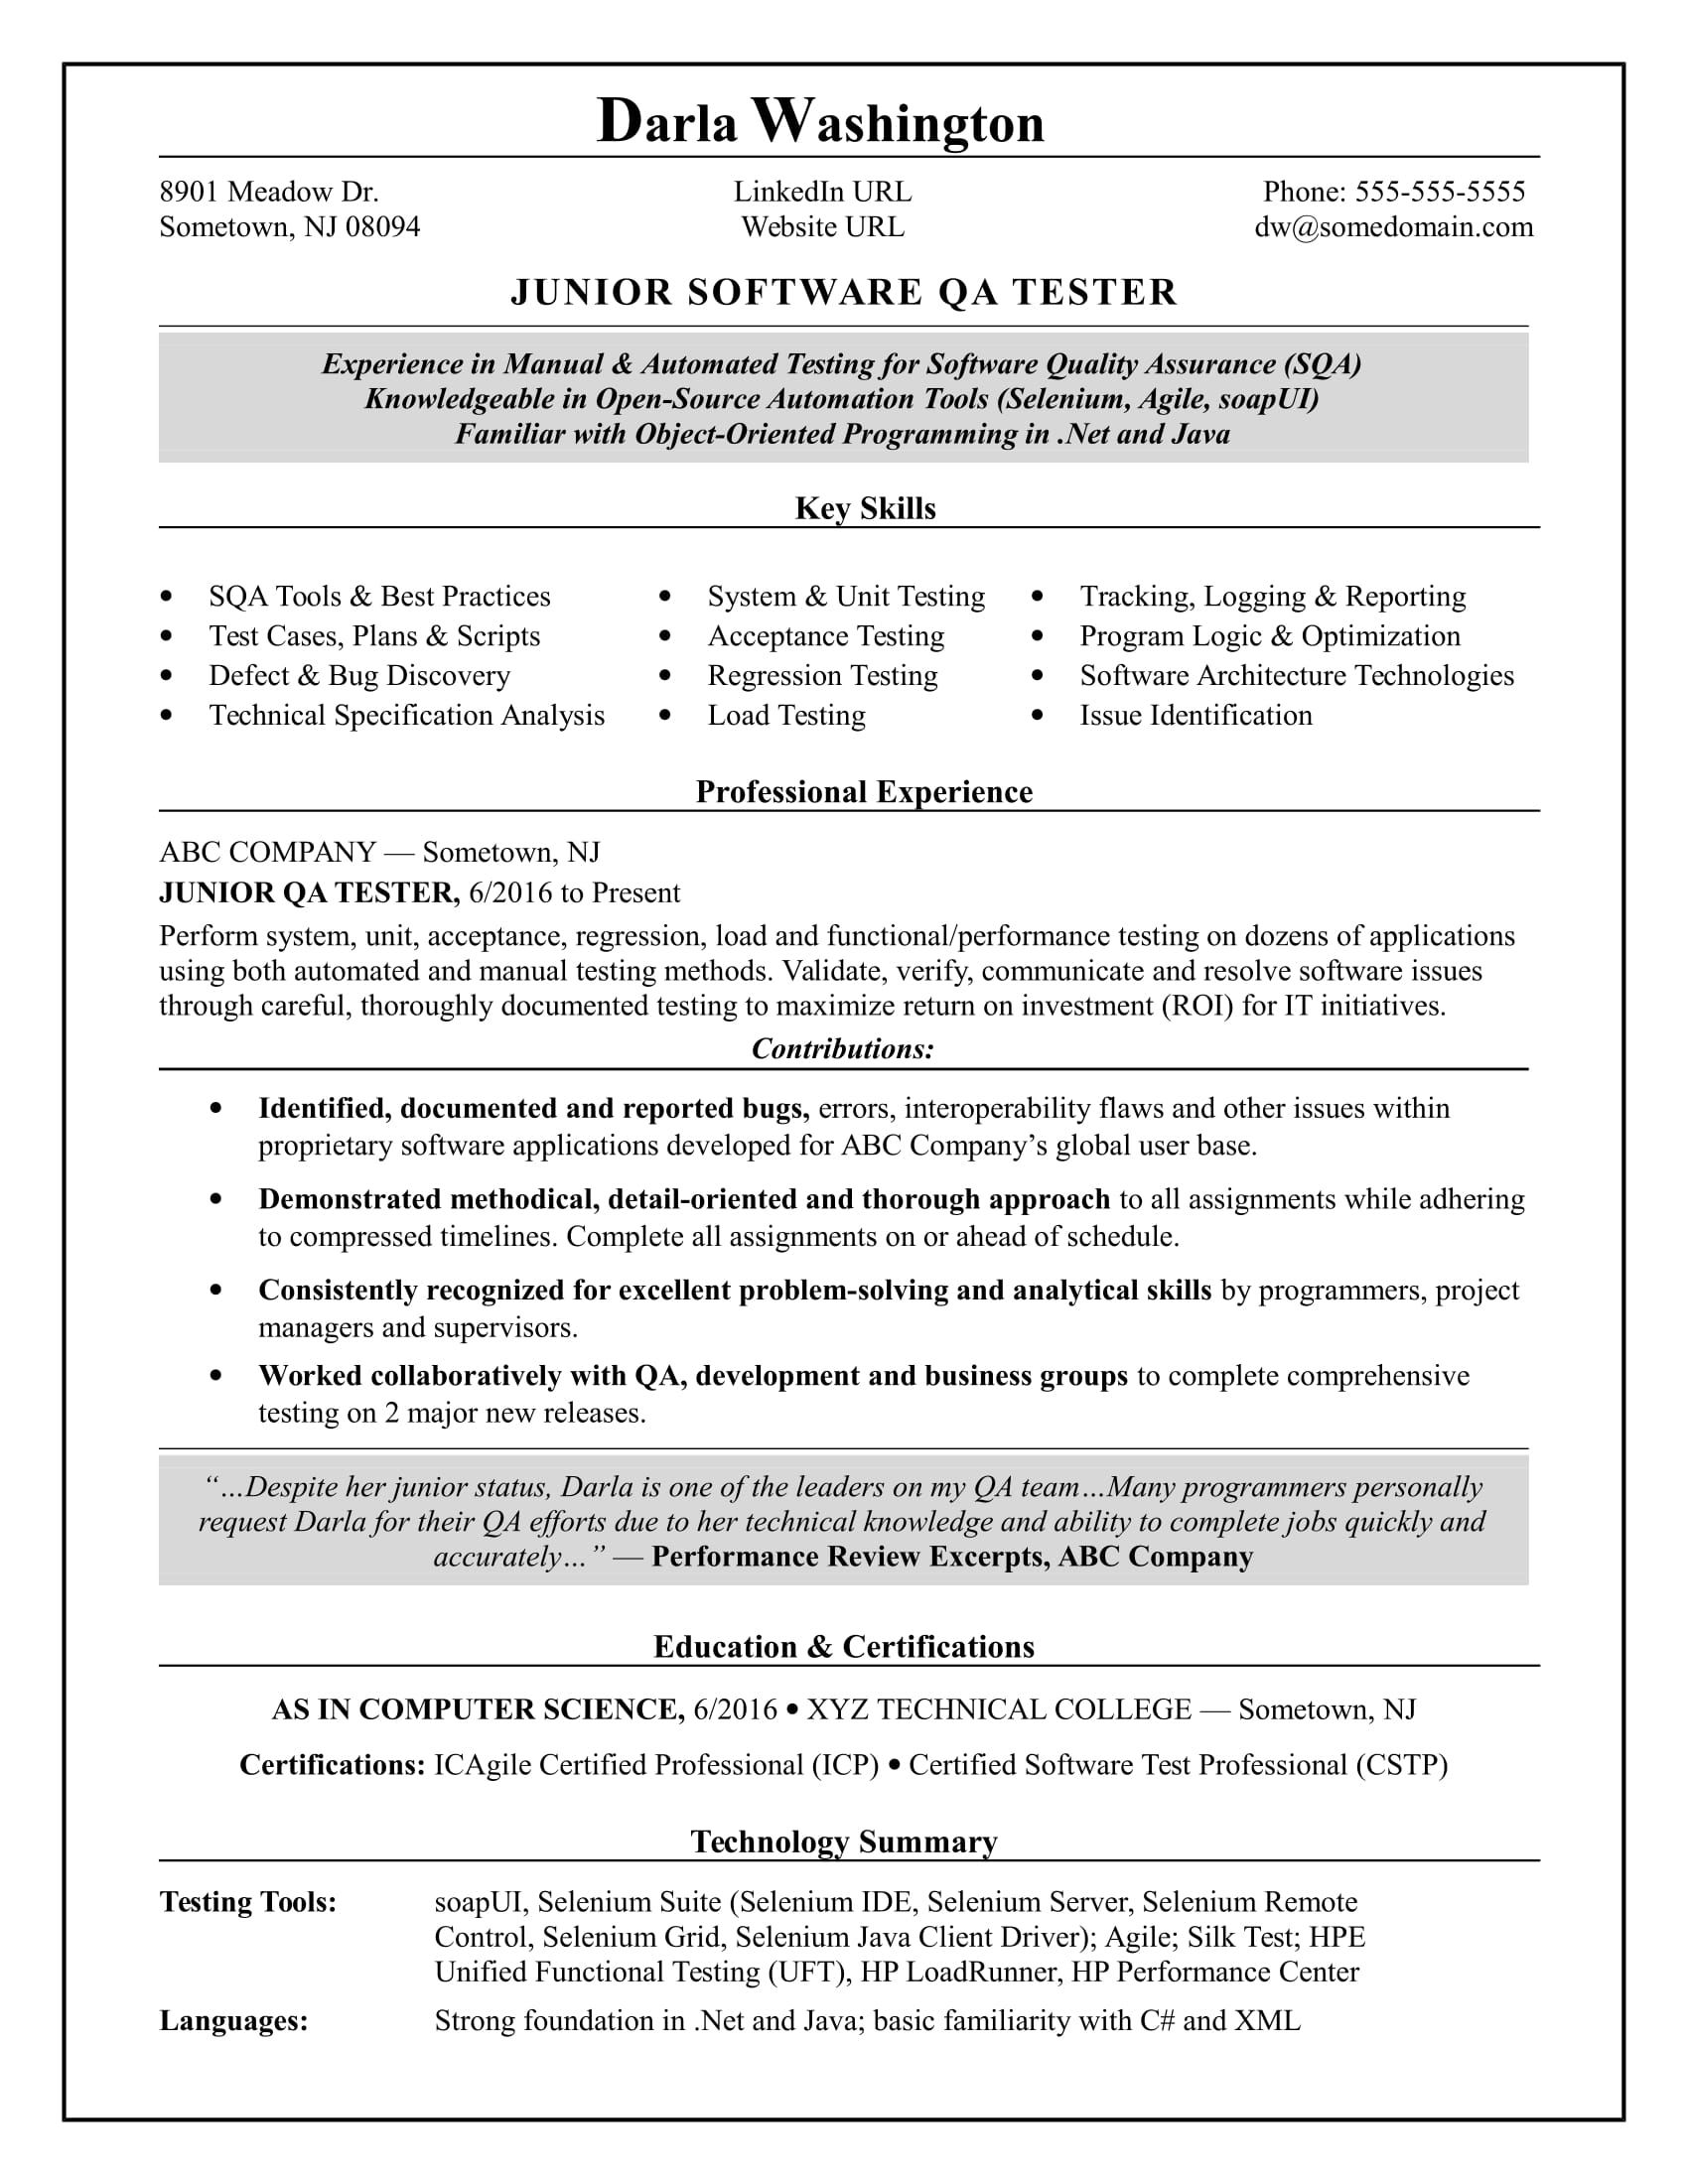 Experienced Qa Software Tester Resume Sample Resume Advice